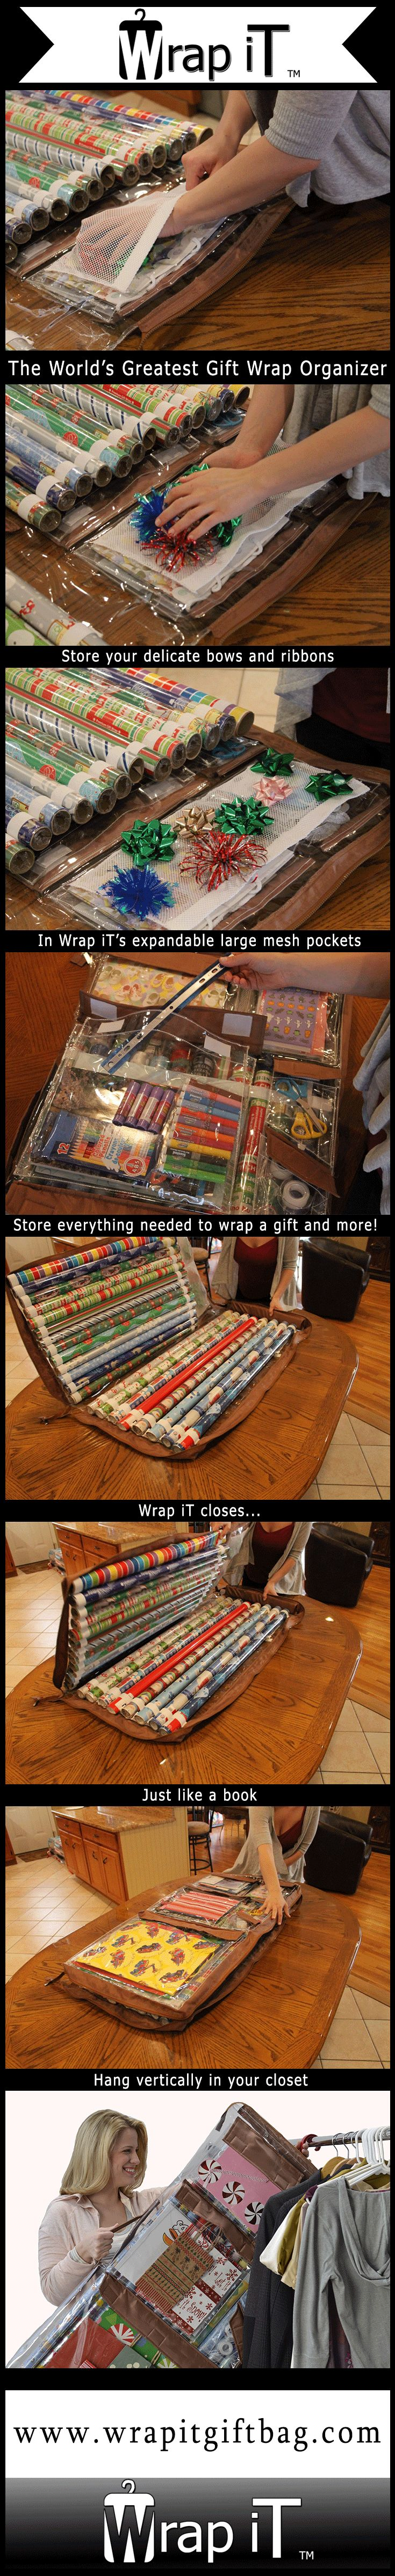 Wrap iT - The World's Greatest Gift Wrap Organizer #giftwrapstorage #wrapit -What a great space saving way to keep all of your gift wrapping supplies conveniently organized and stored!